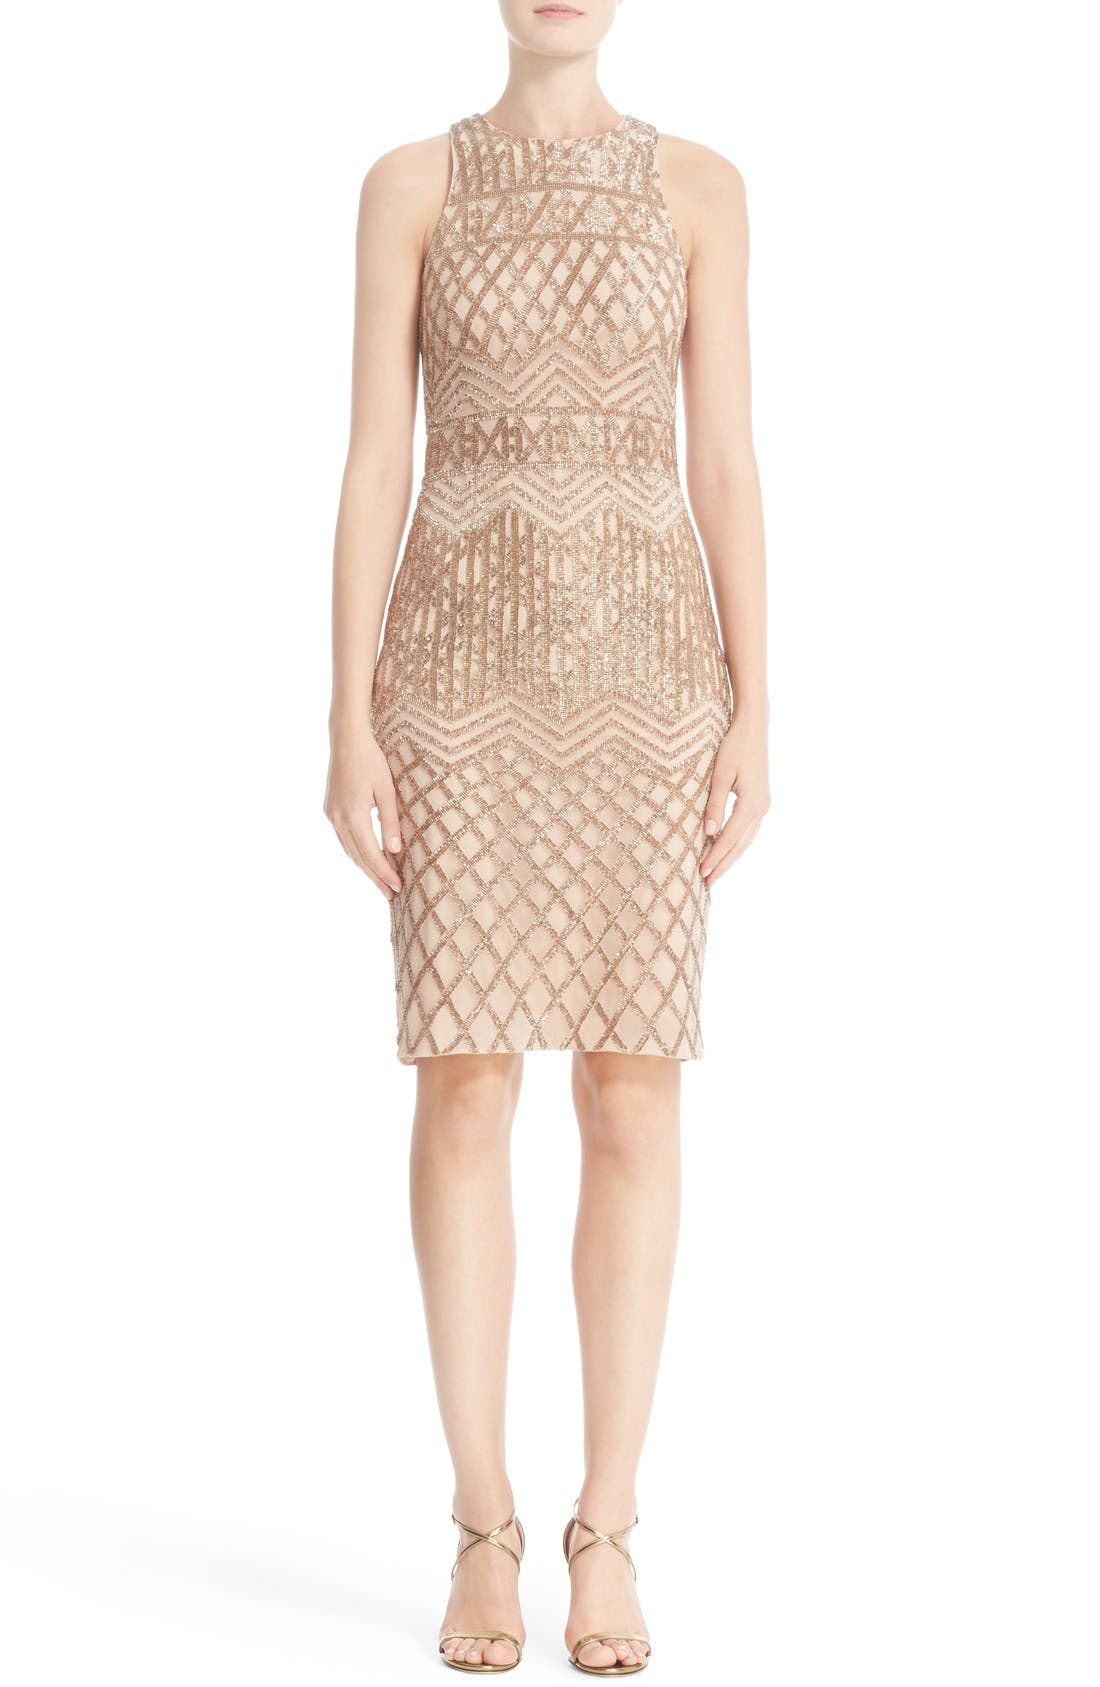 RACHEL GILBERT Beaded High Neck Sheath Dress